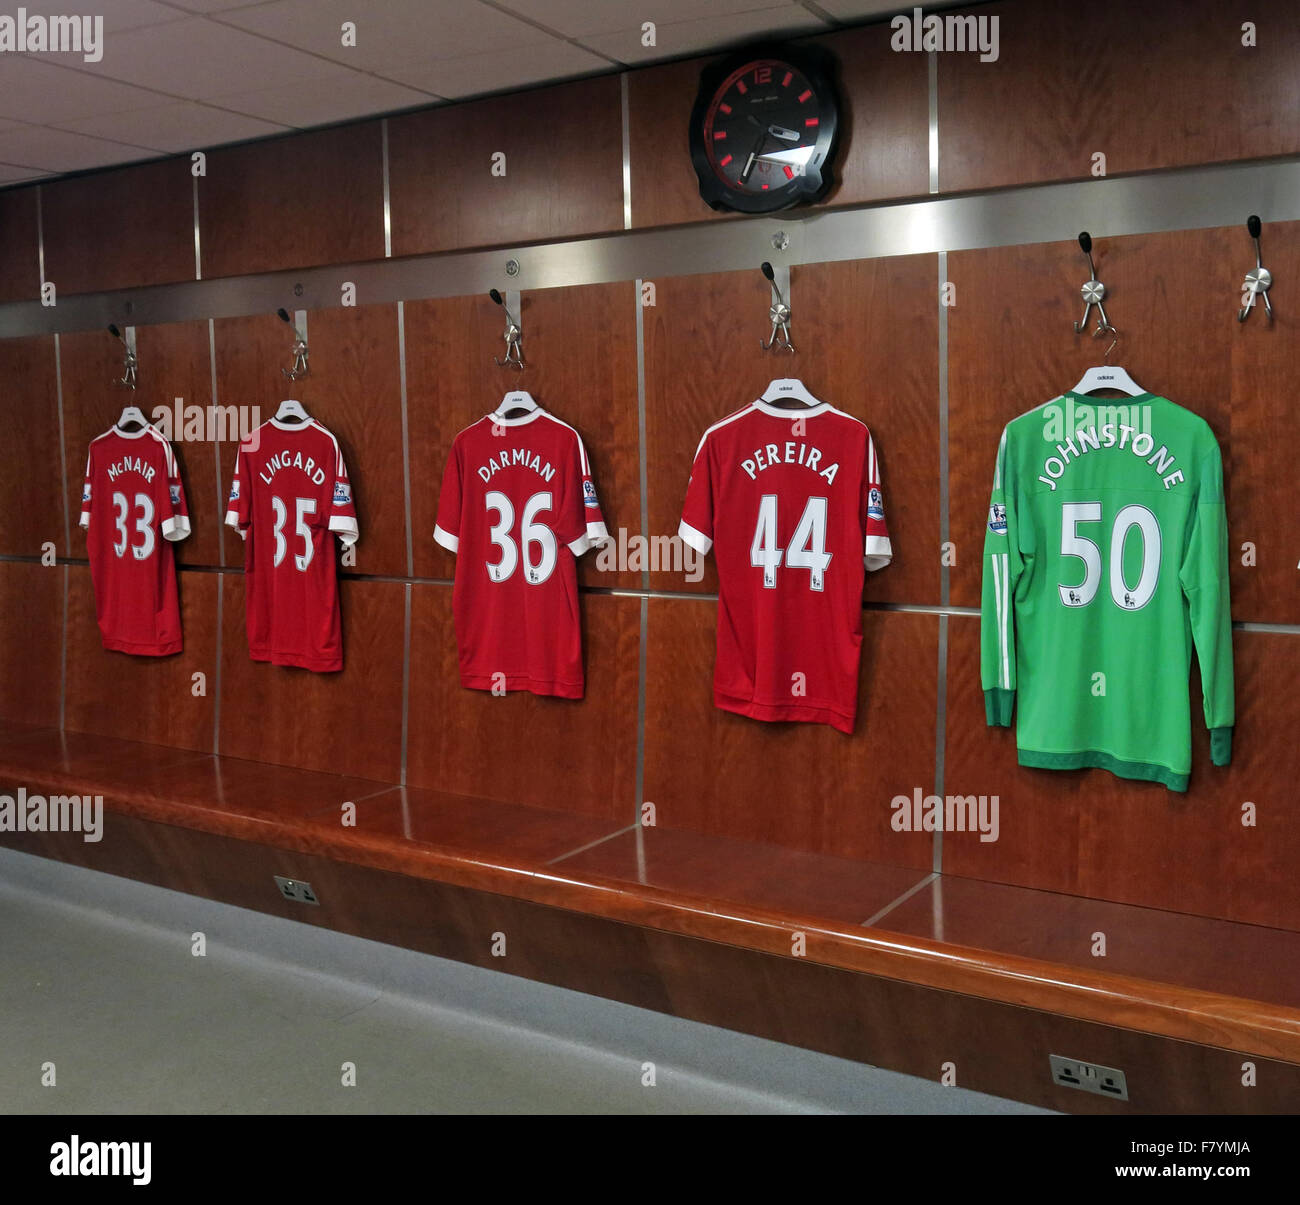 Mix of MUFC shirts hanging up in MUFC dressing room, with MUFC clock, Old Trafford, Manchester - Stock Image